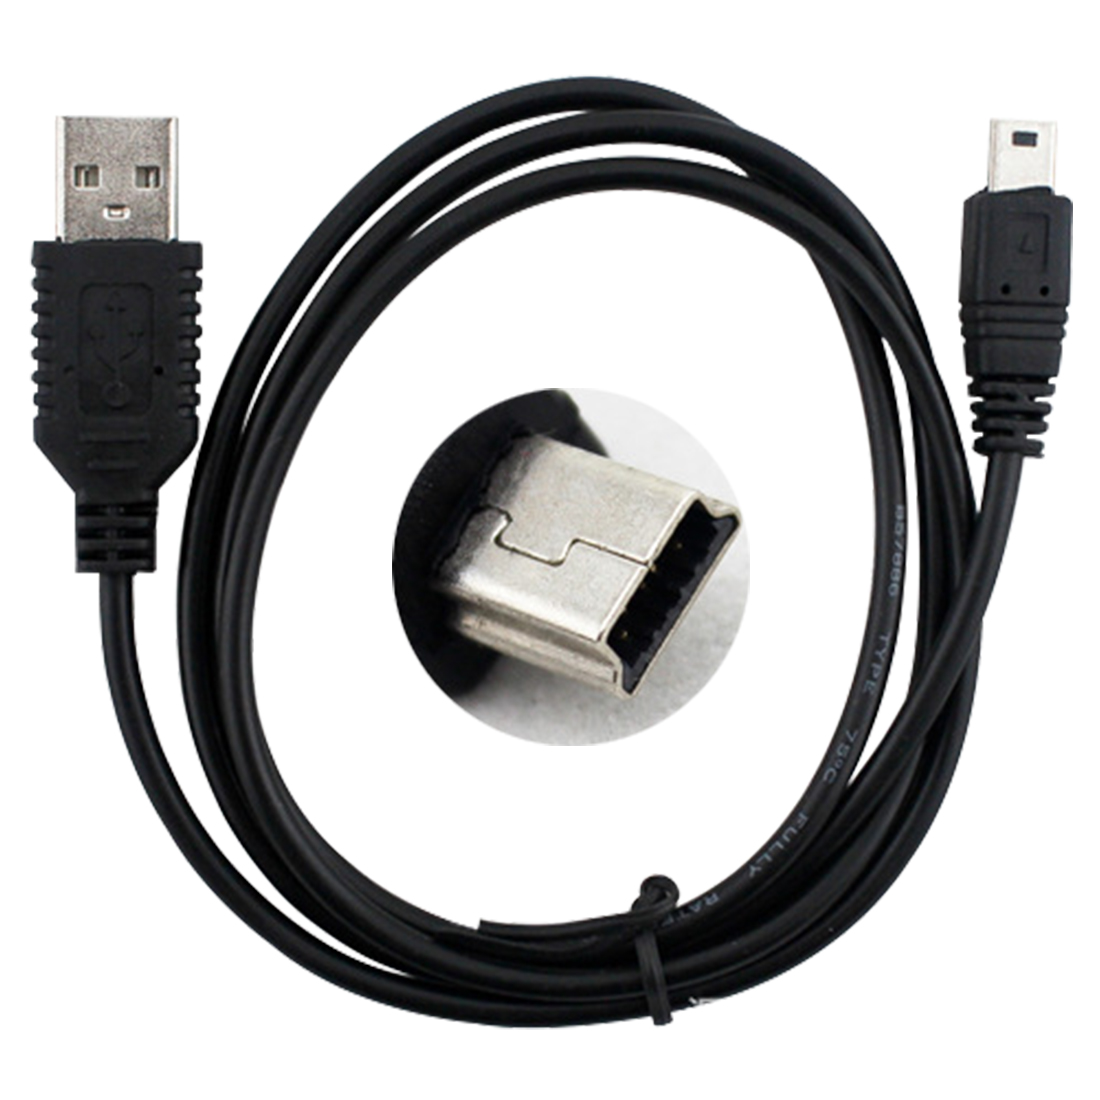 Marsnaska 50cm Adapter Mini USB 2.0 A Male to Mini 5 Pin B Charge Data Cable Adapter For MP3 Mp4 Player Digital Camera phone usb am to 24 pin canon camera cable 1 5 meter